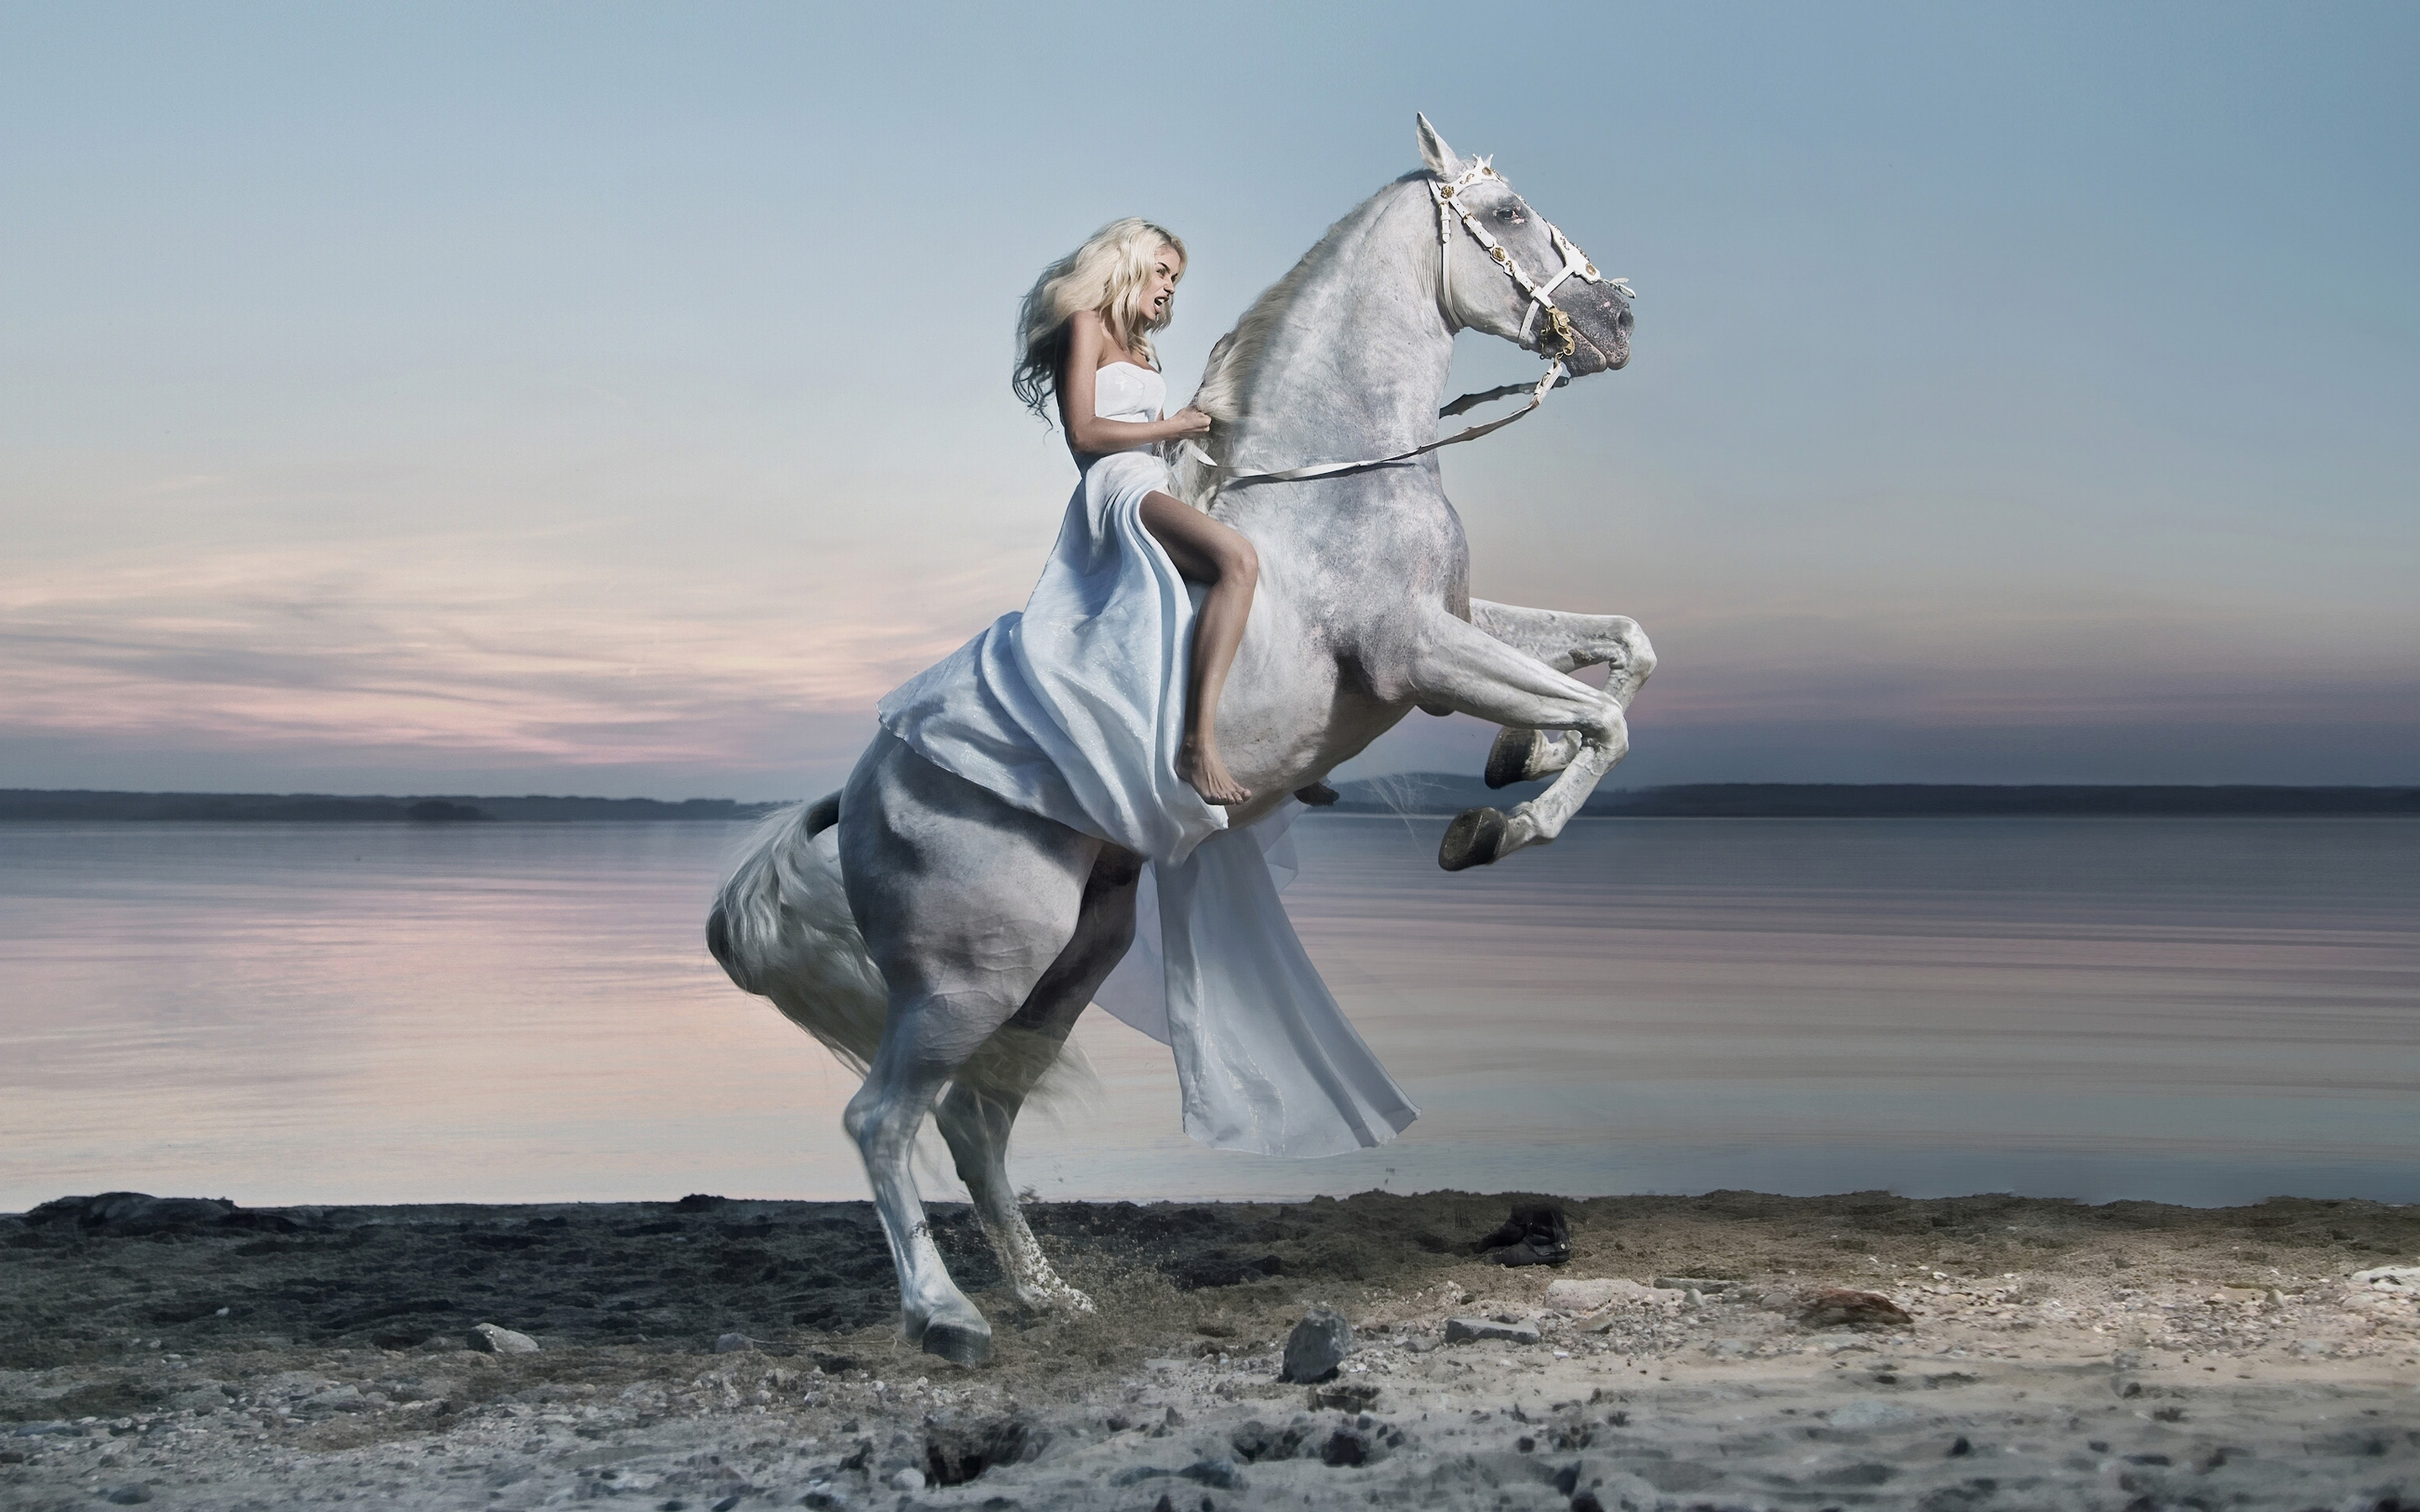 Beautiful Wallpapers Of Lonely Girl Blue Girl On A White Horse Lake Hd Desktop Wallpaper